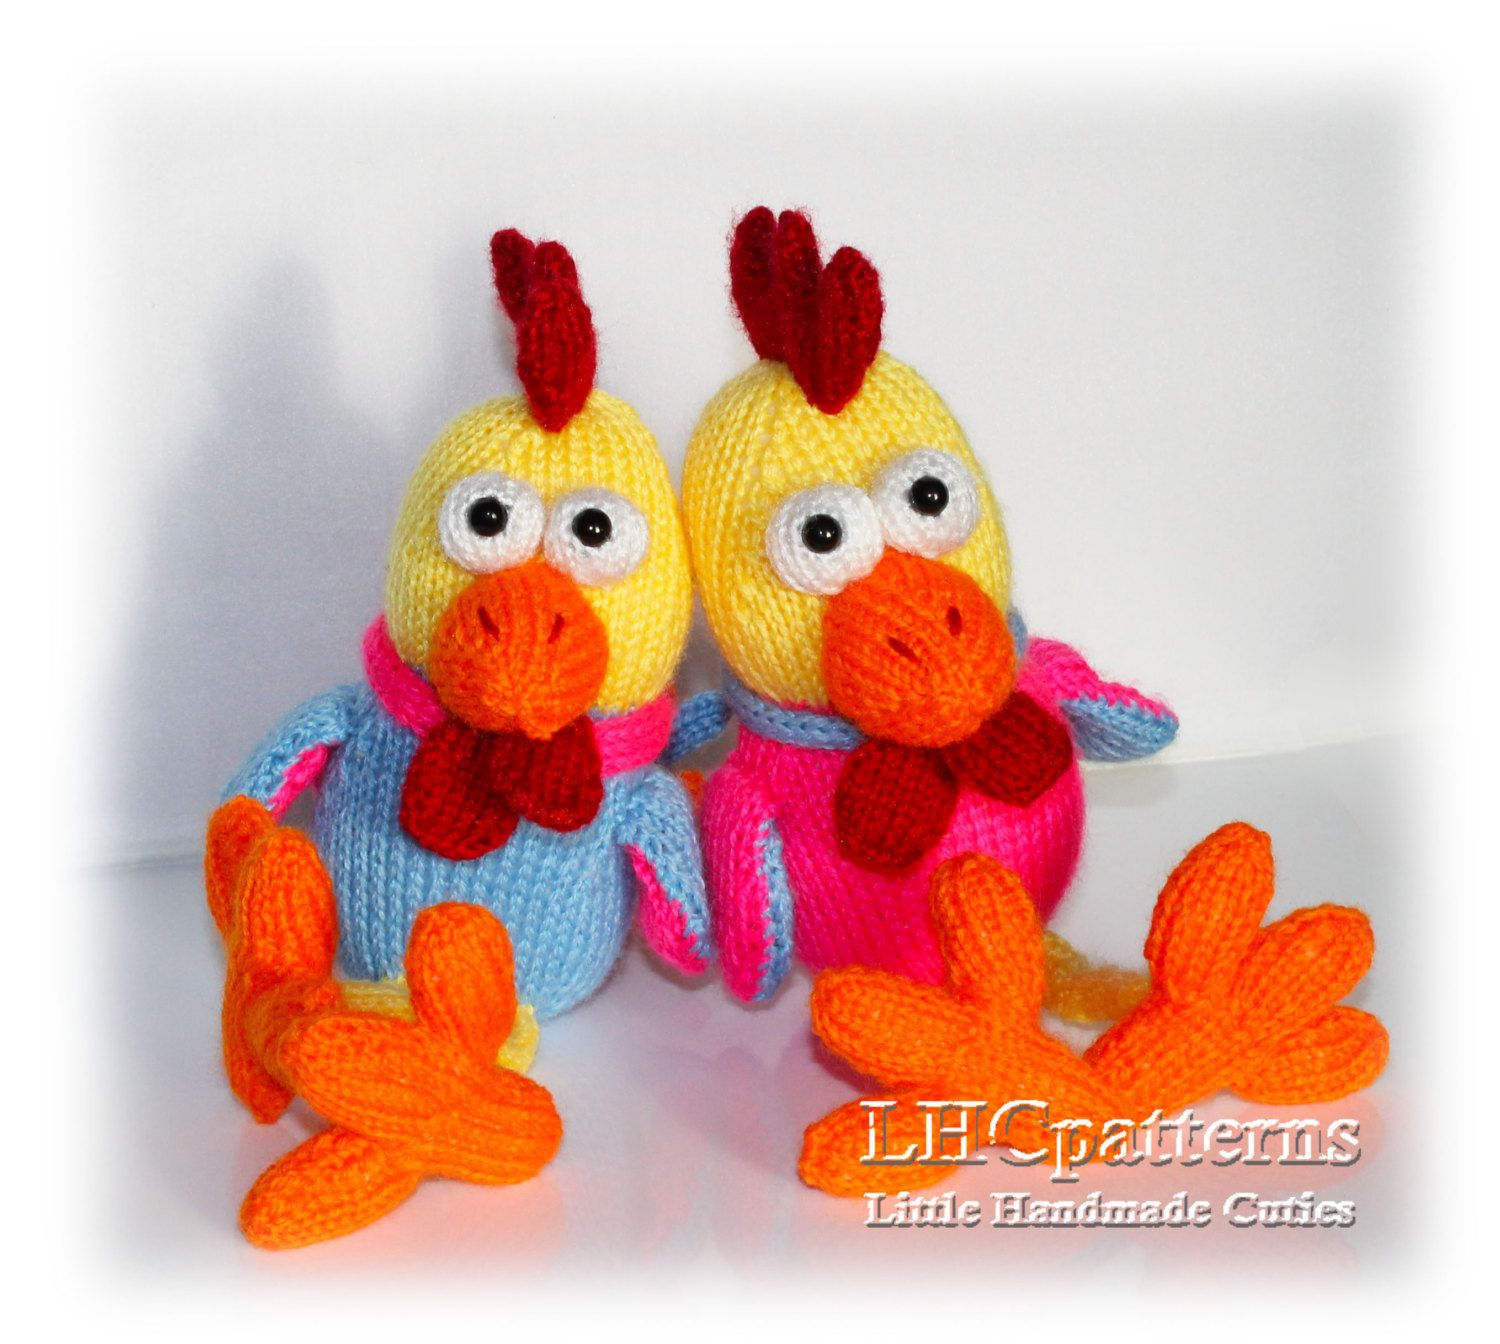 Rooster knitted toy pattern  Knitted Rooster PDF tutorial  DIY     Rooster knitted toy pattern  Knitted Rooster PDF tutorial  DIY rooster soft  toy pattern  New year symbol  2017 year symbol by LHCpatterns on Etsy